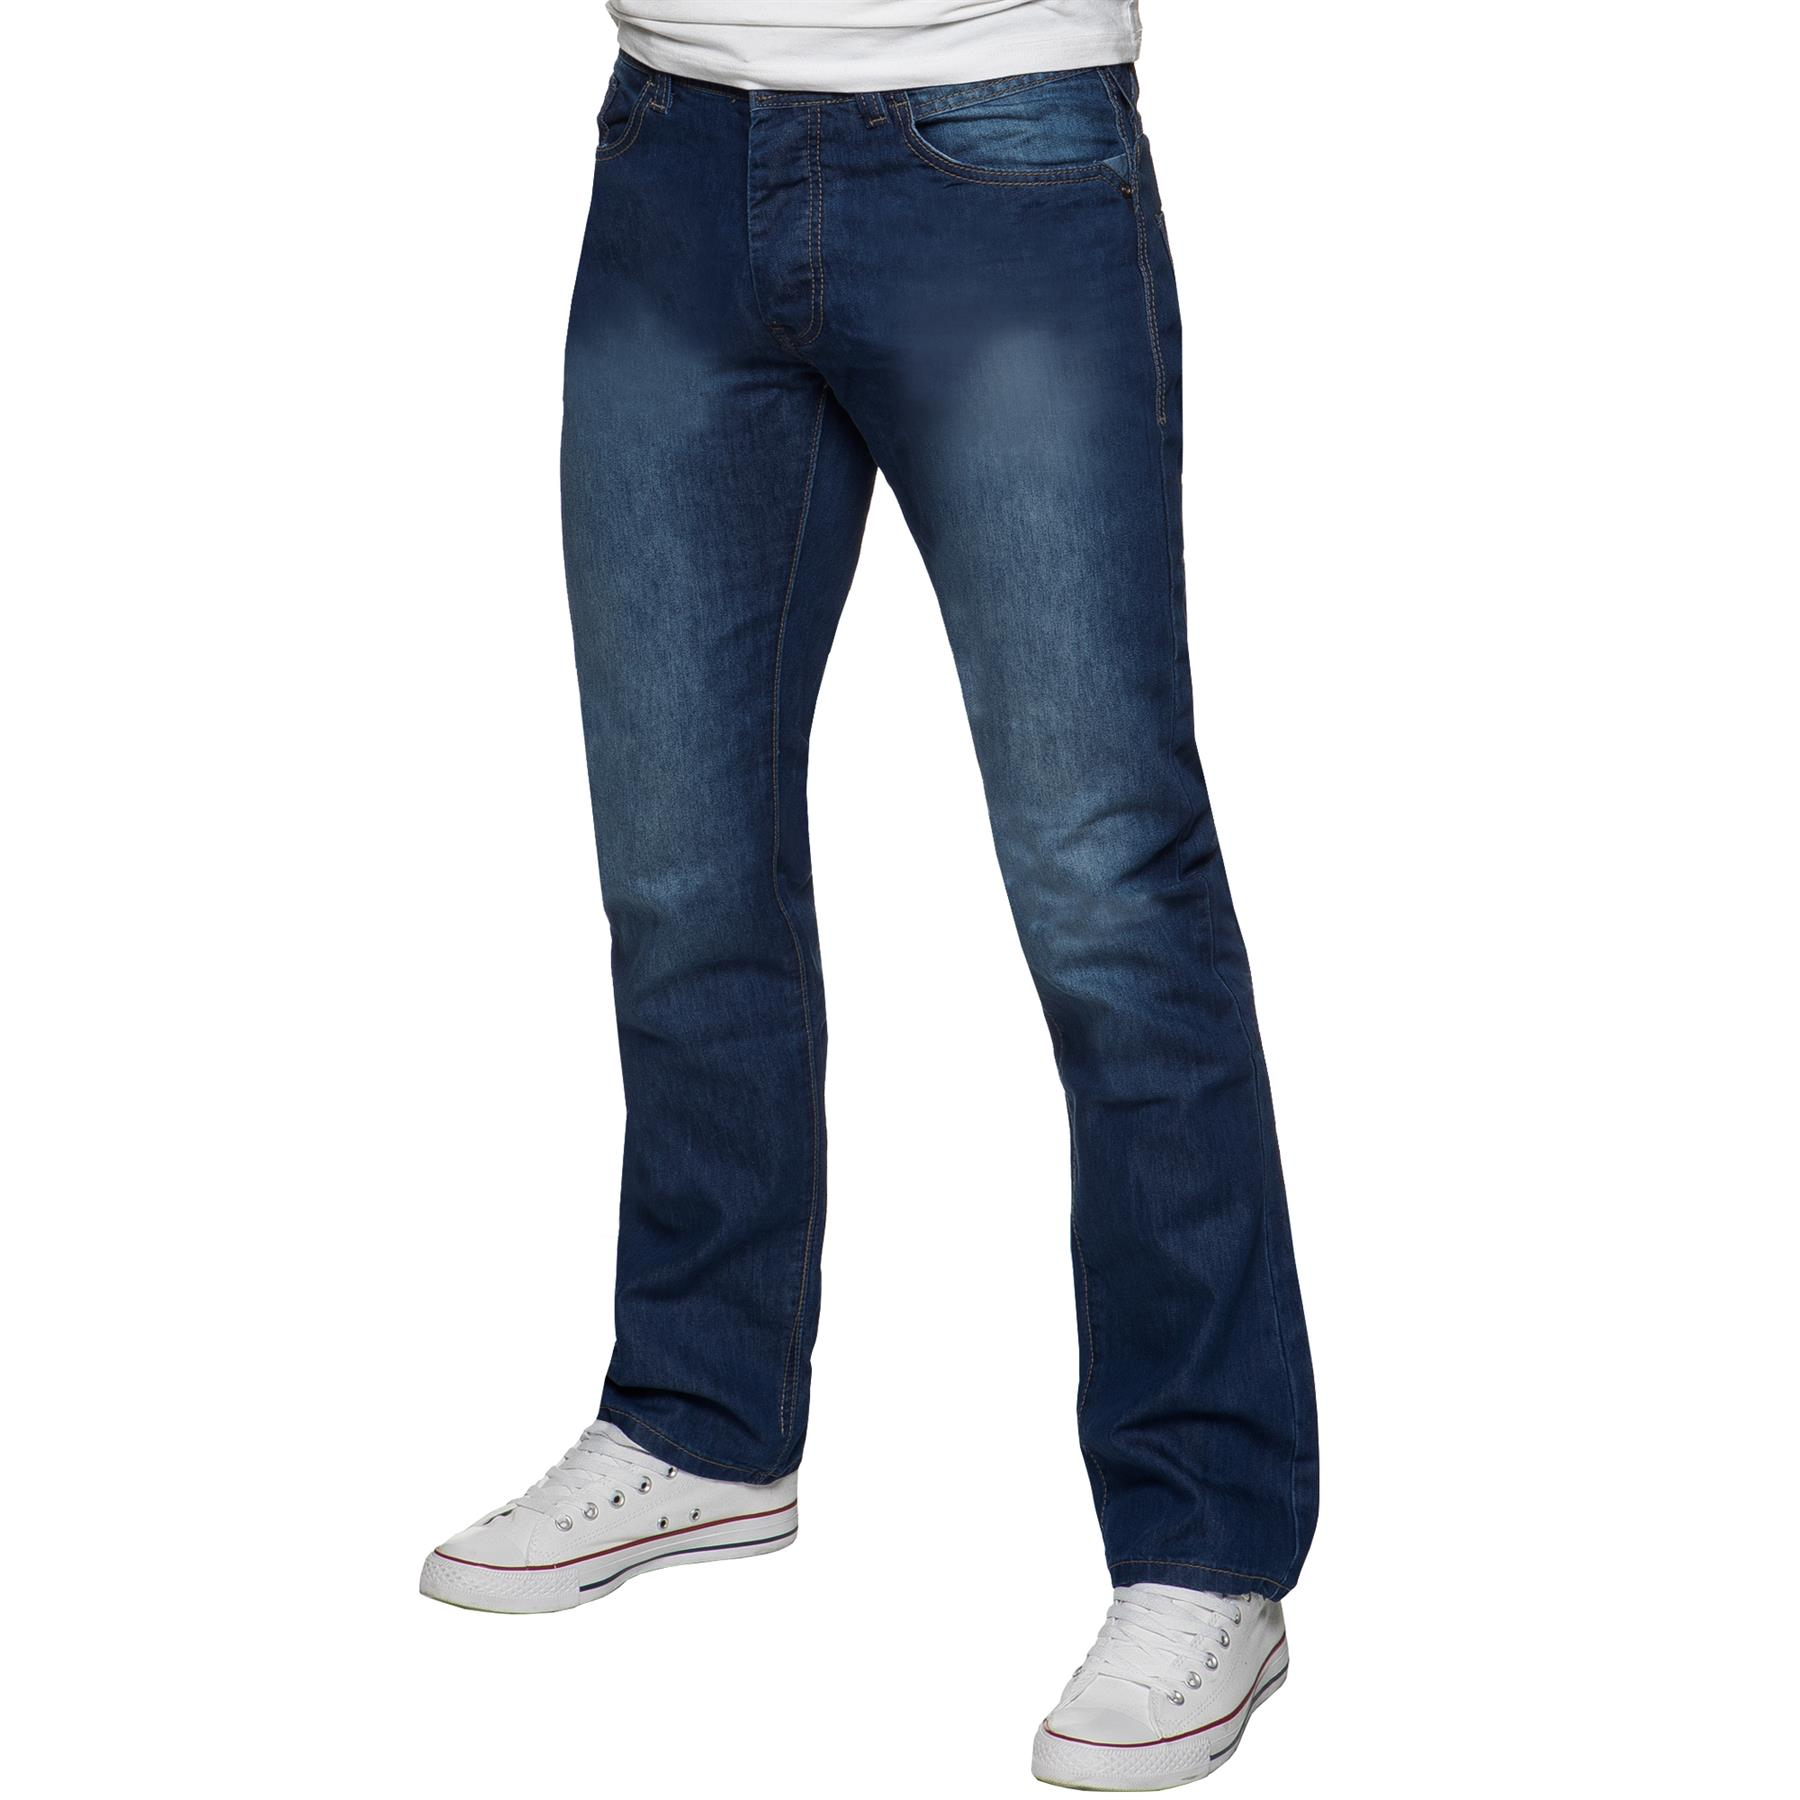 Kruze-Mens-Basic-Straight-Leg-Bootcut-Stretch-Jeans-Denim-Regular-Big-Tall-Waist thumbnail 25